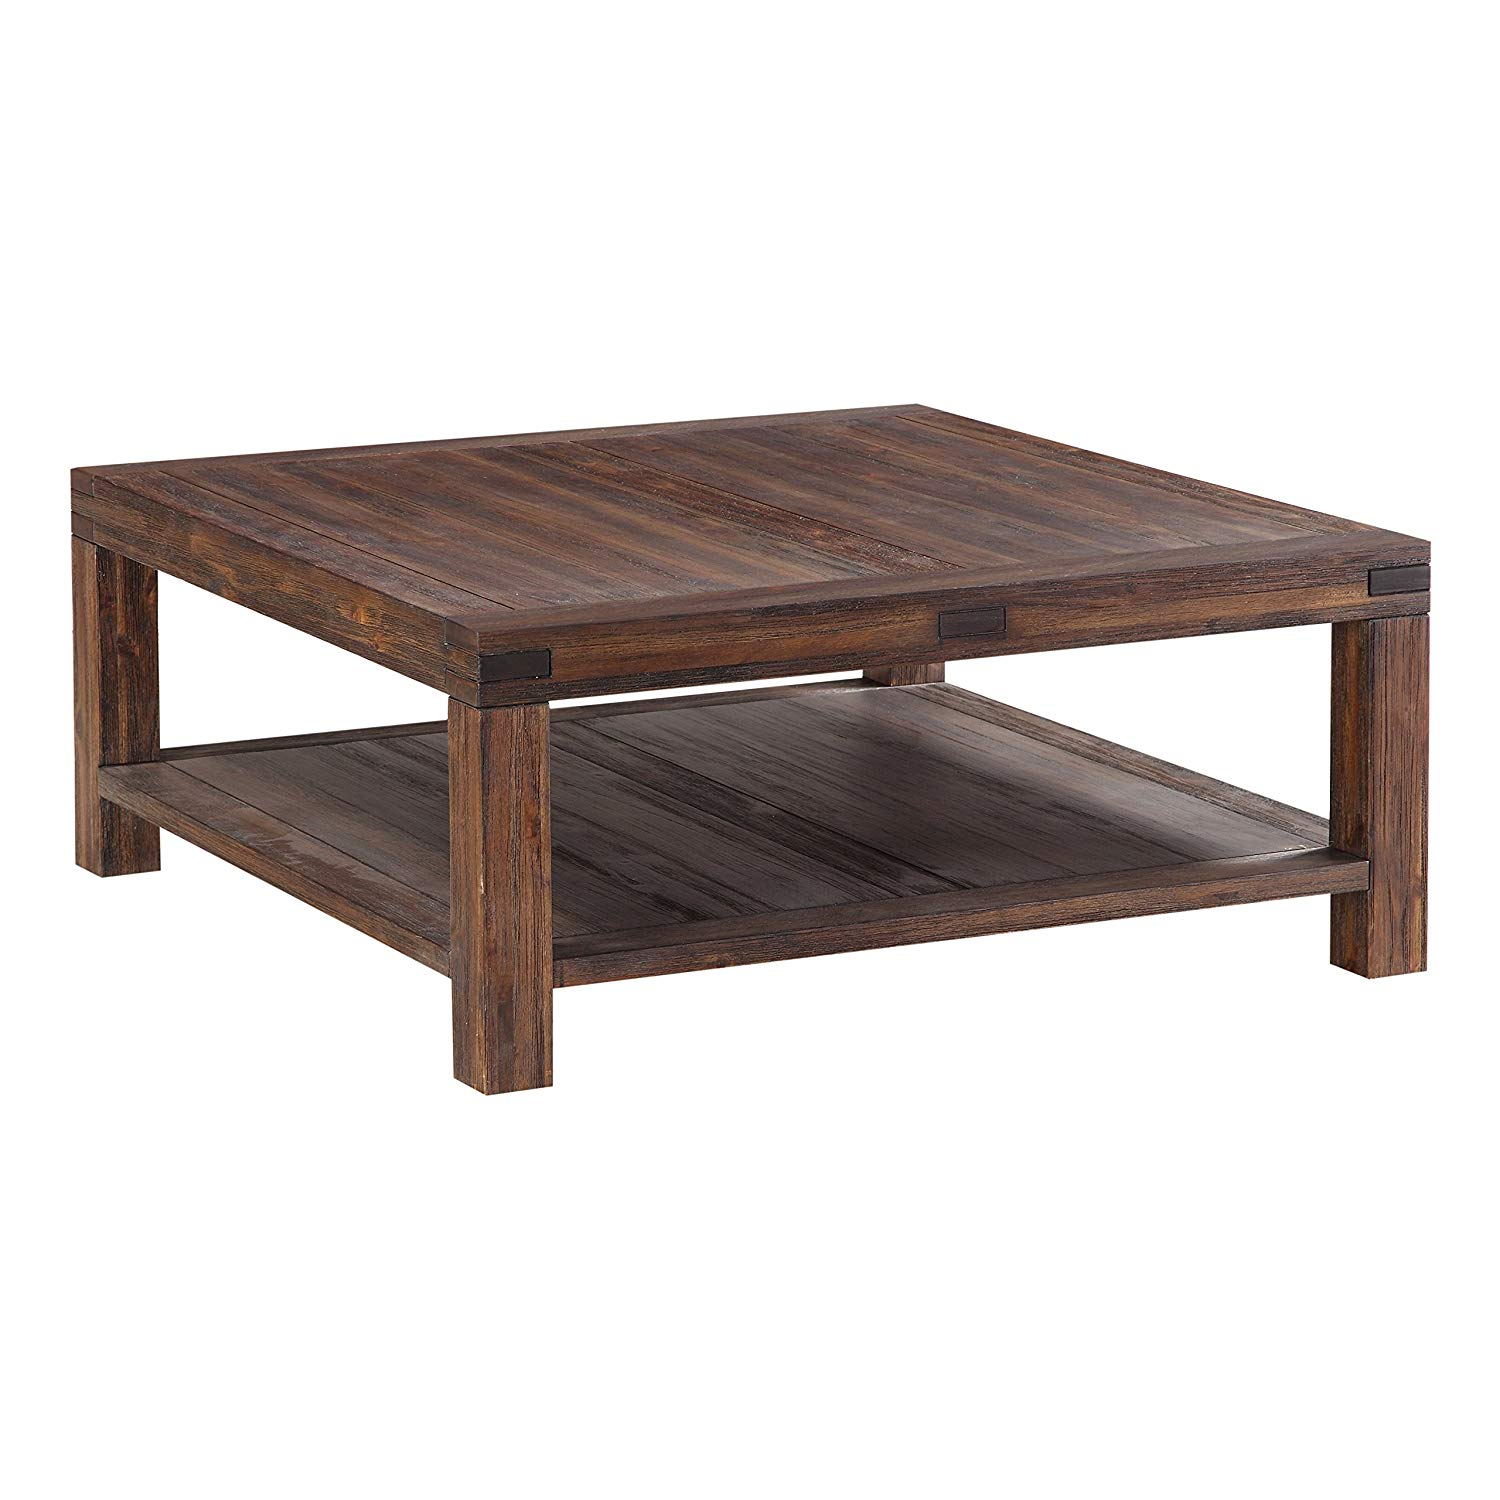 modus furniture meadow coffee table brick brown and end tables the kitchen dining kmart outdoor decor big lots lift top foot sofa patio swing light accents floor lamp inch bedside